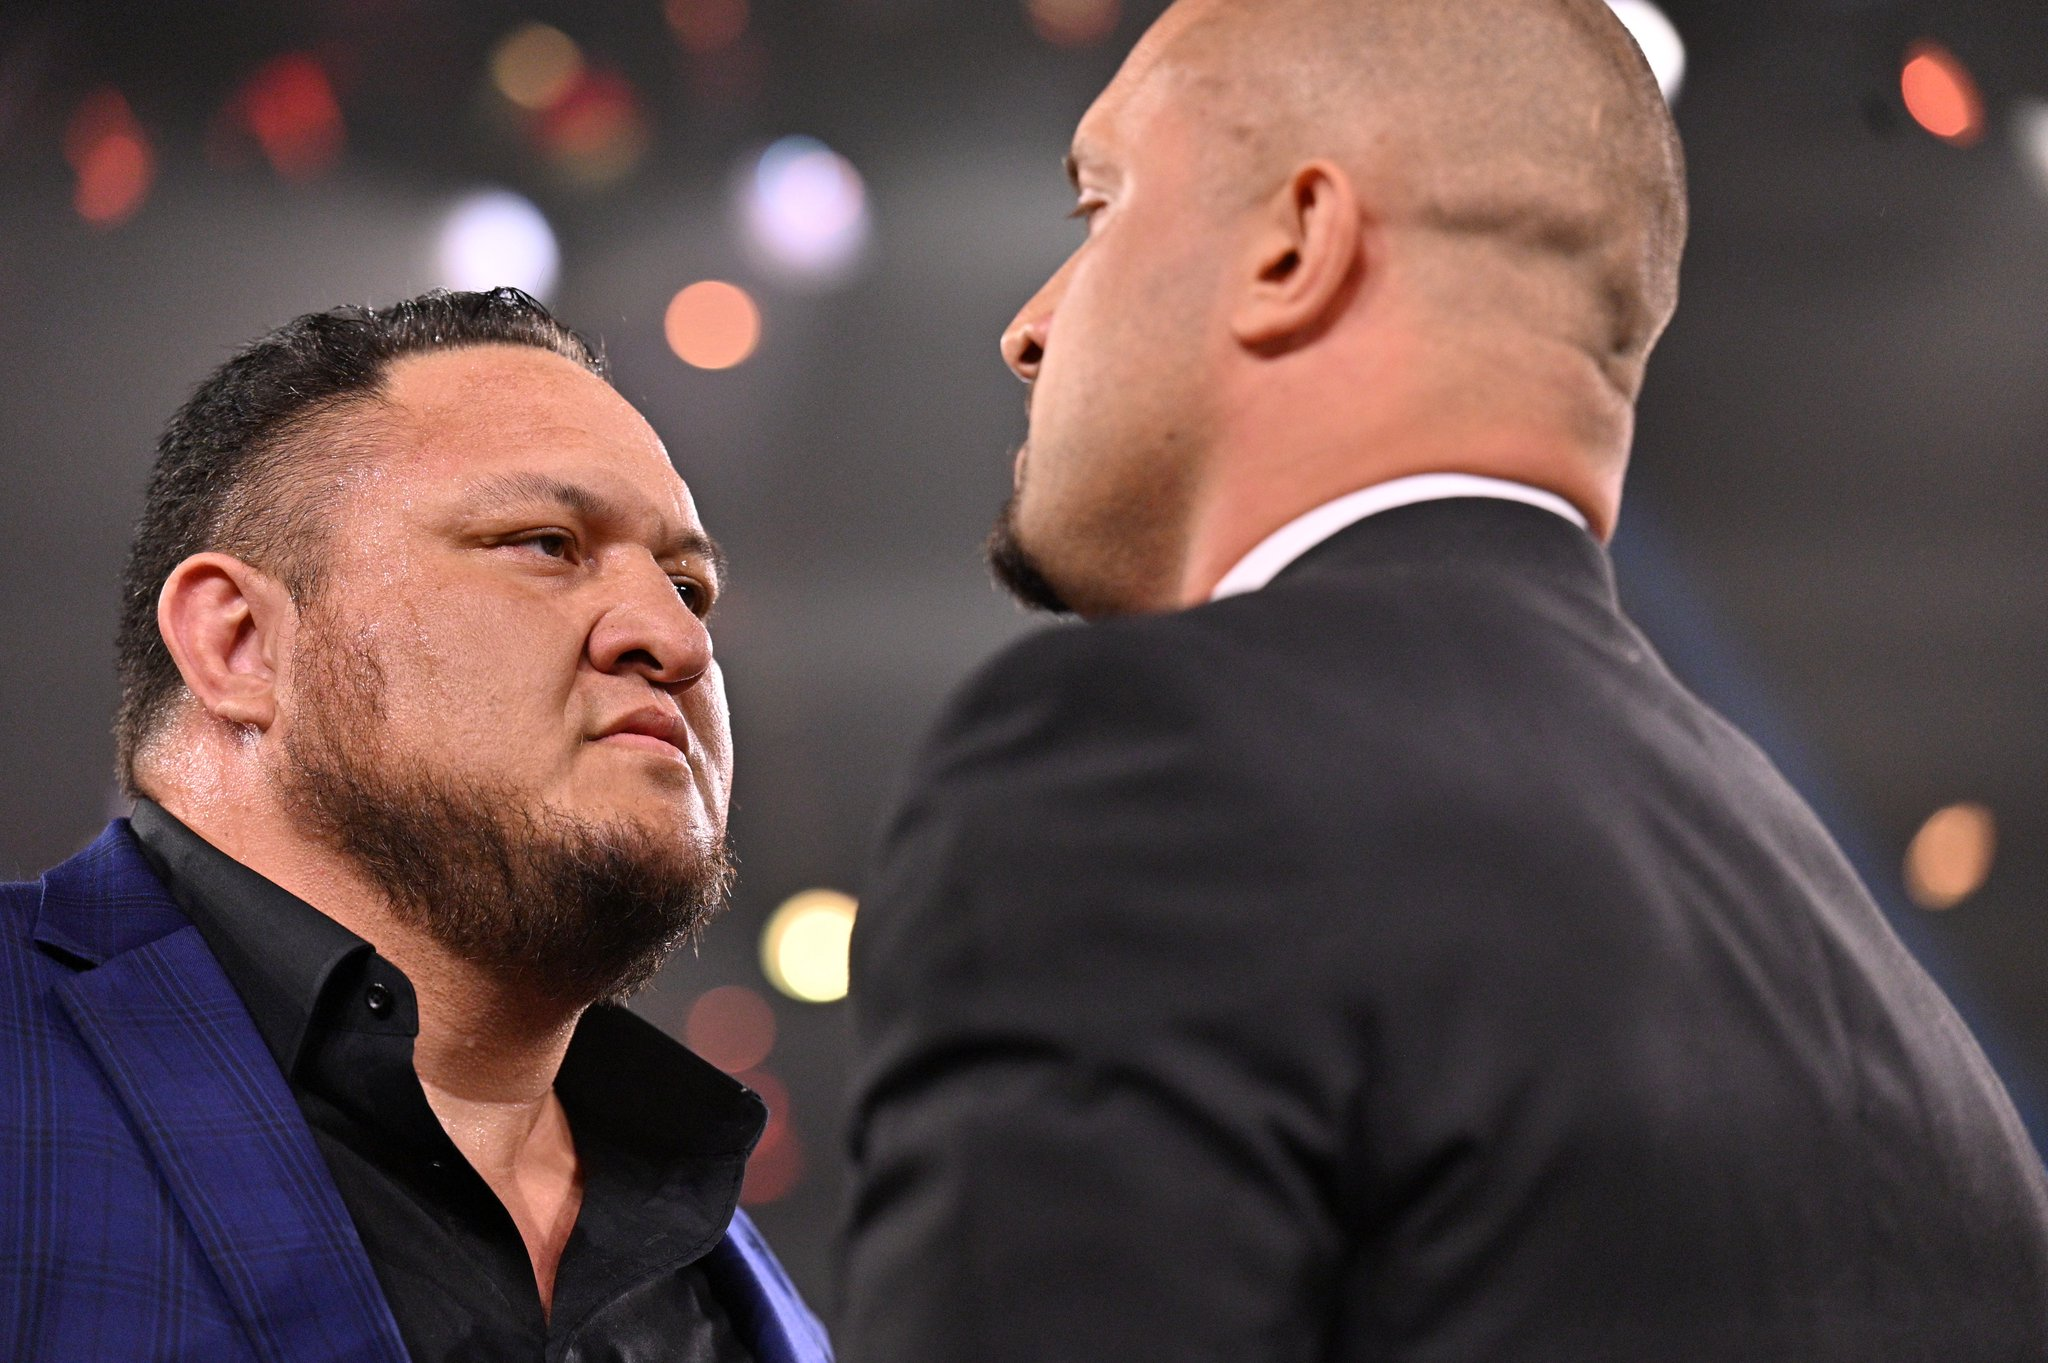 Samoa Joe returning to the ring at NXT TakeOver Photo